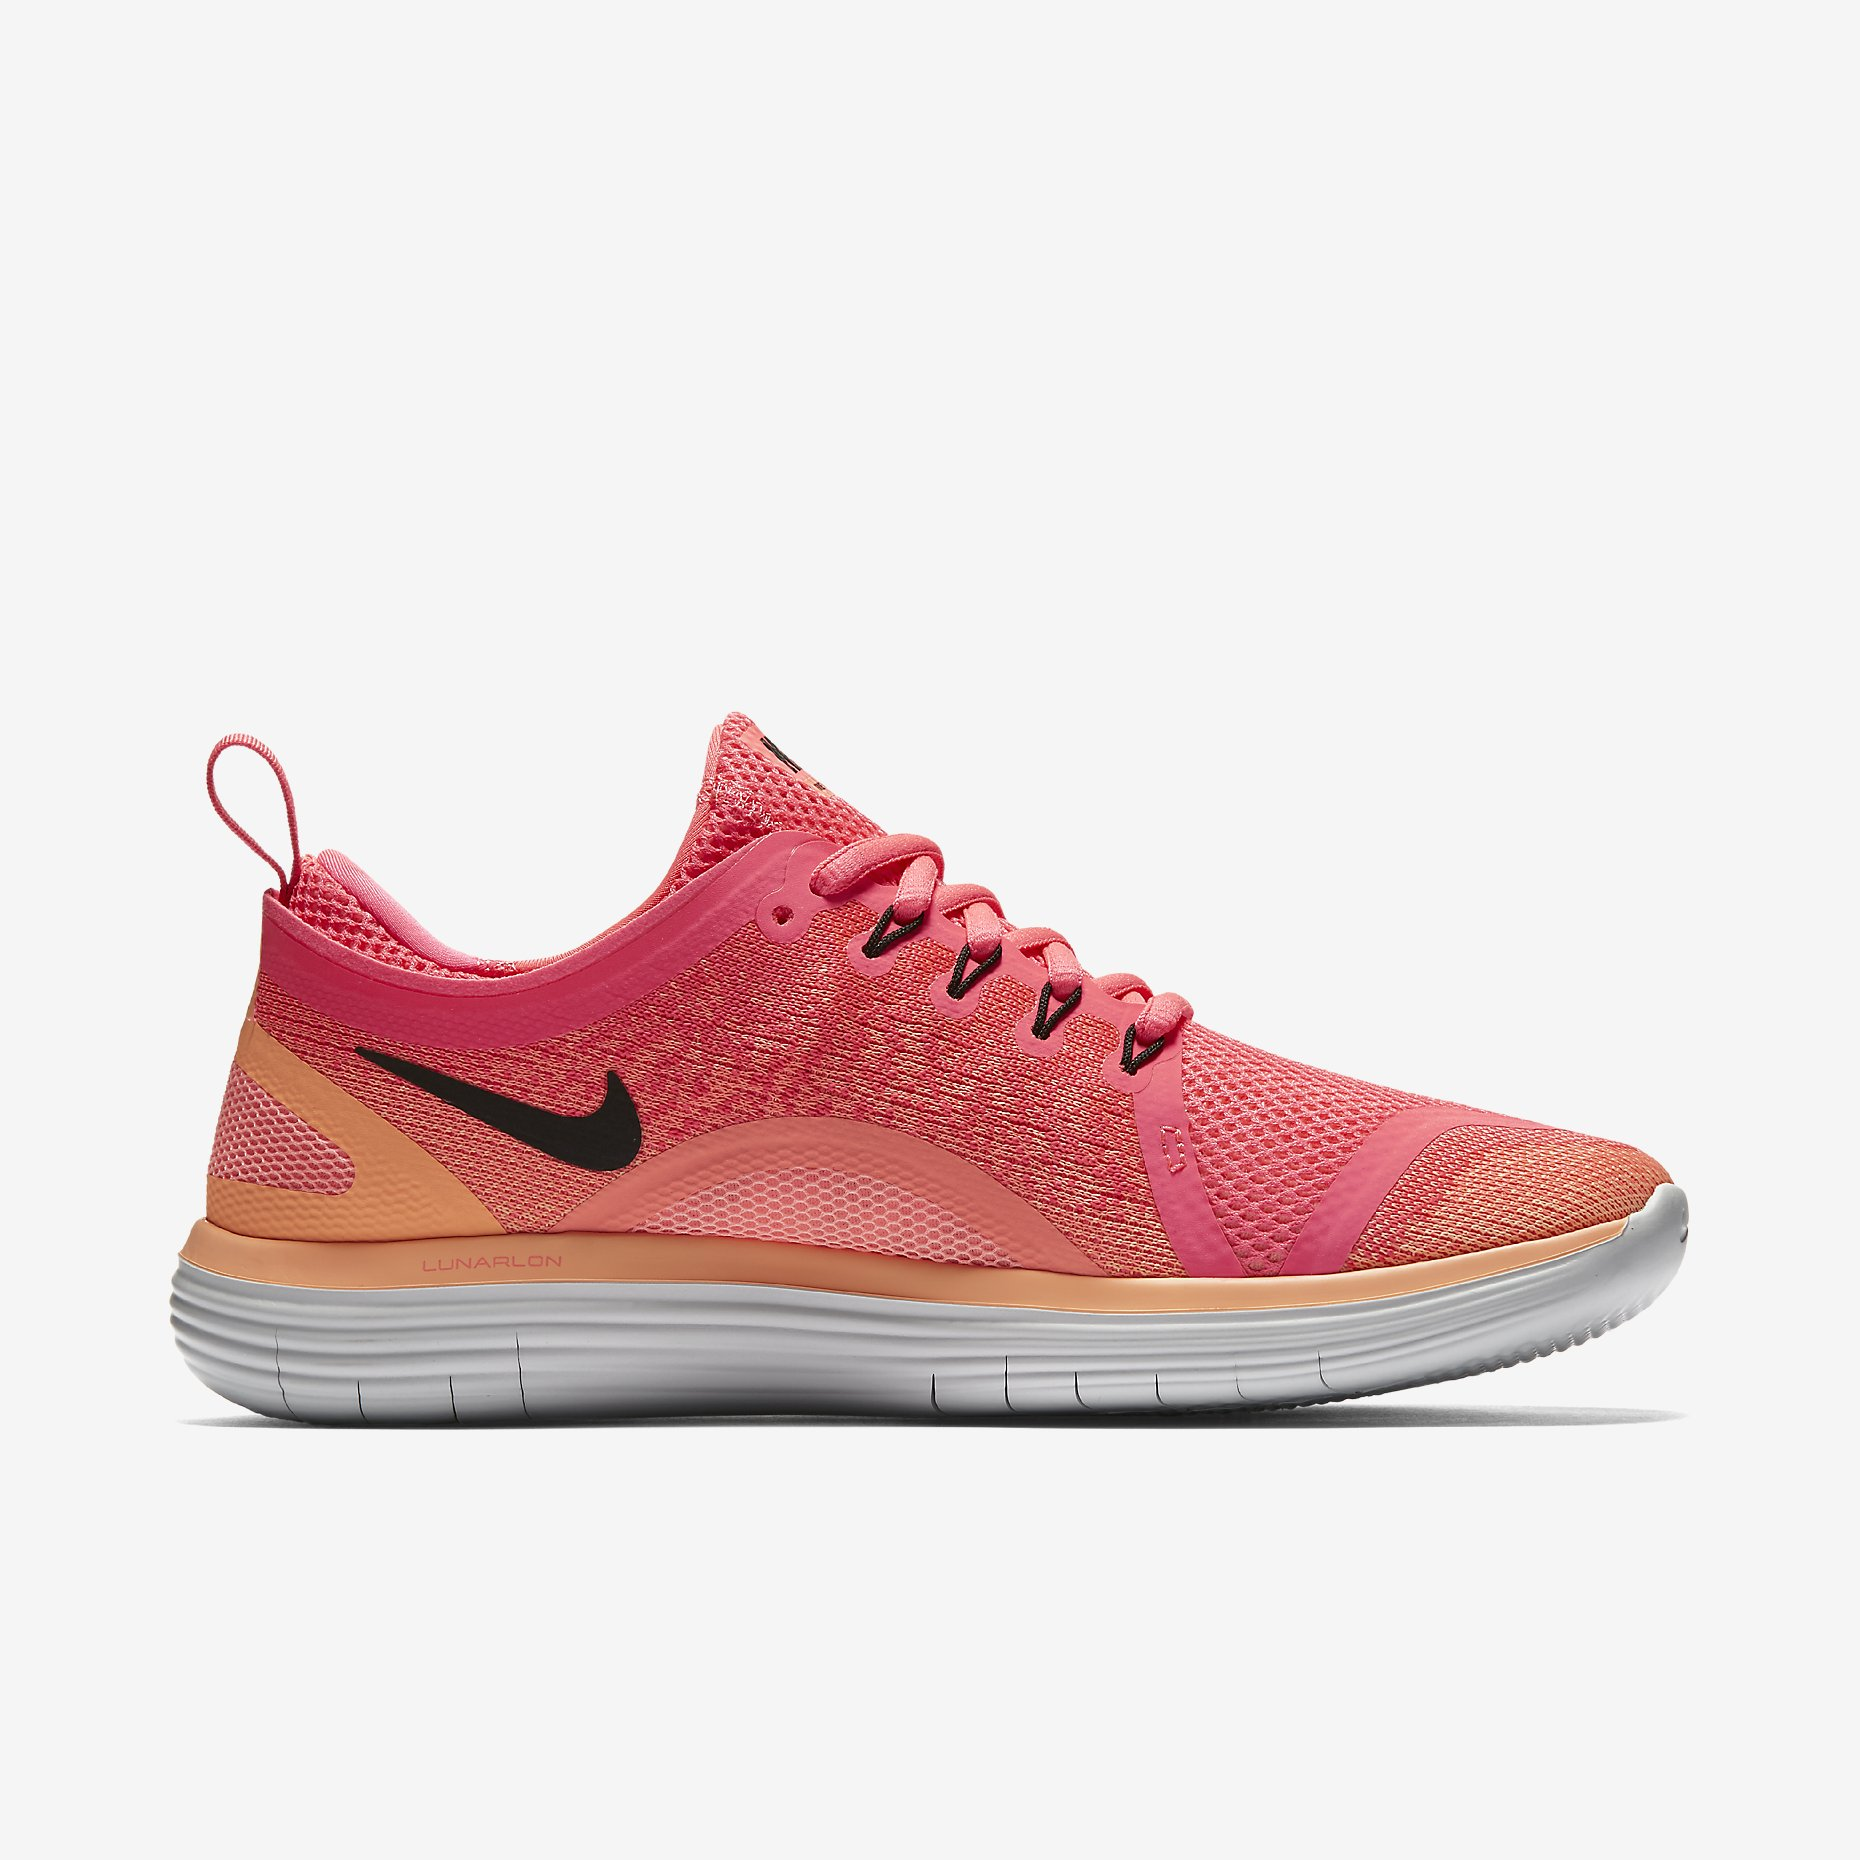 nike free rn distance, Nike air max womens 90 white pink